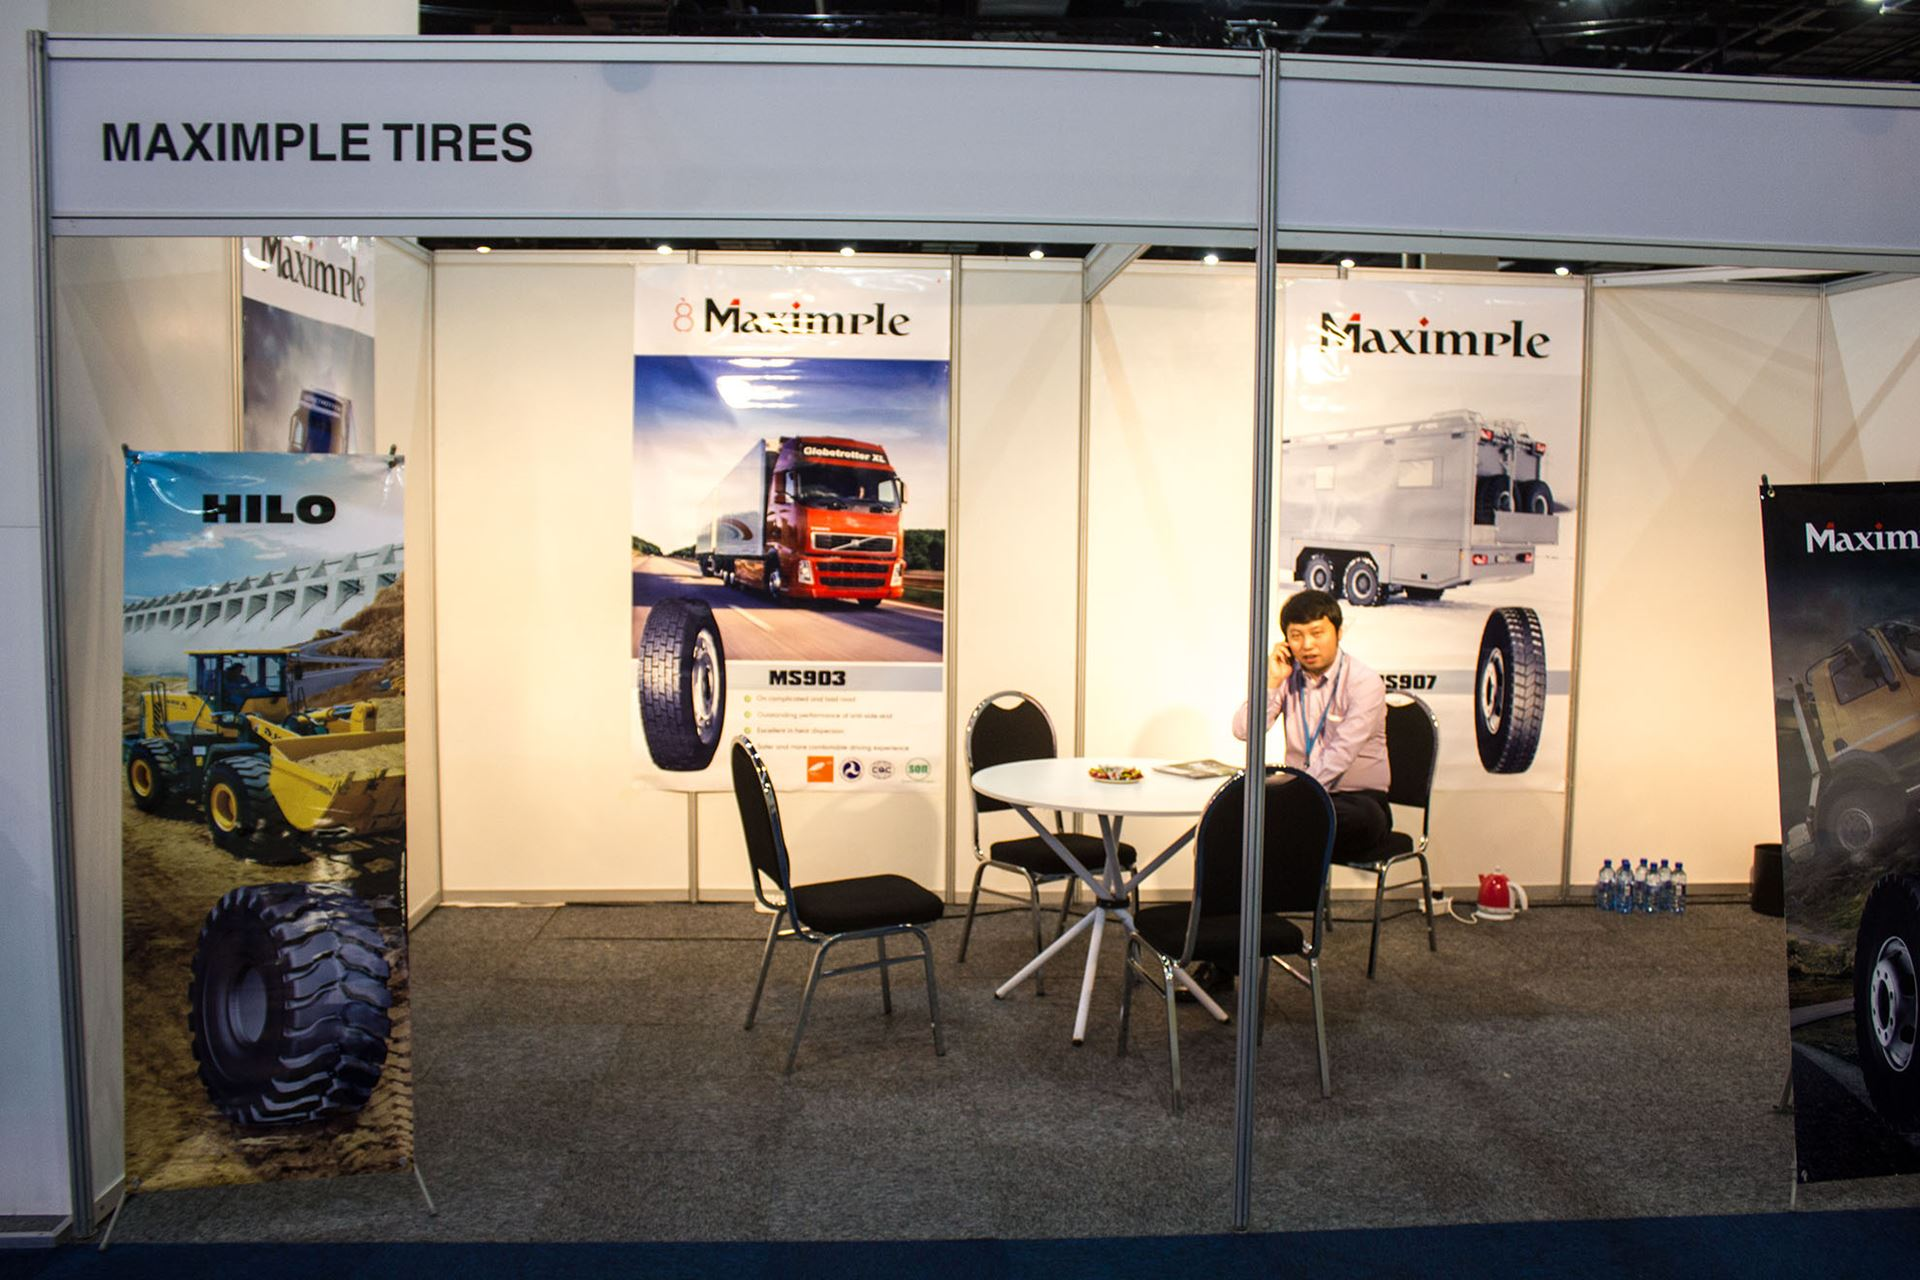 Tyre-Expo-South-Africa-2014-Maximple-tires